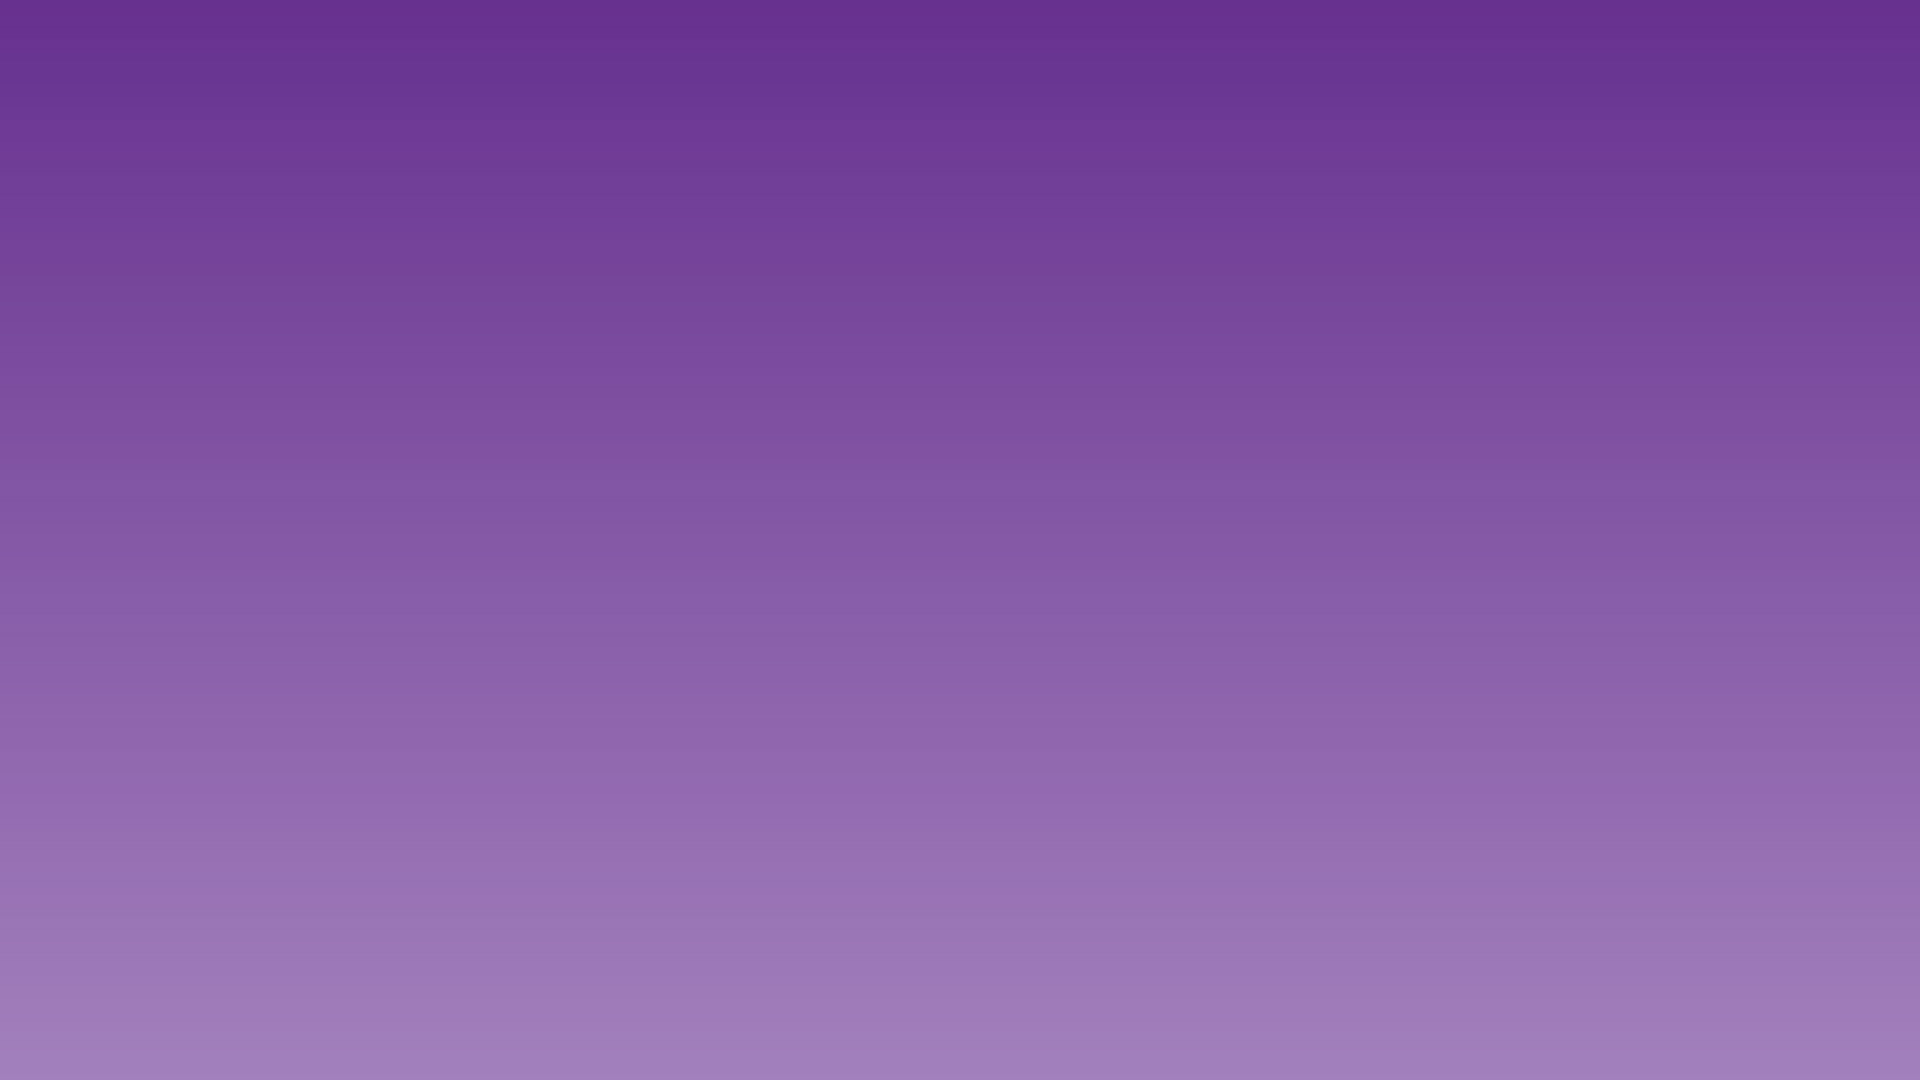 slider_purple_bg